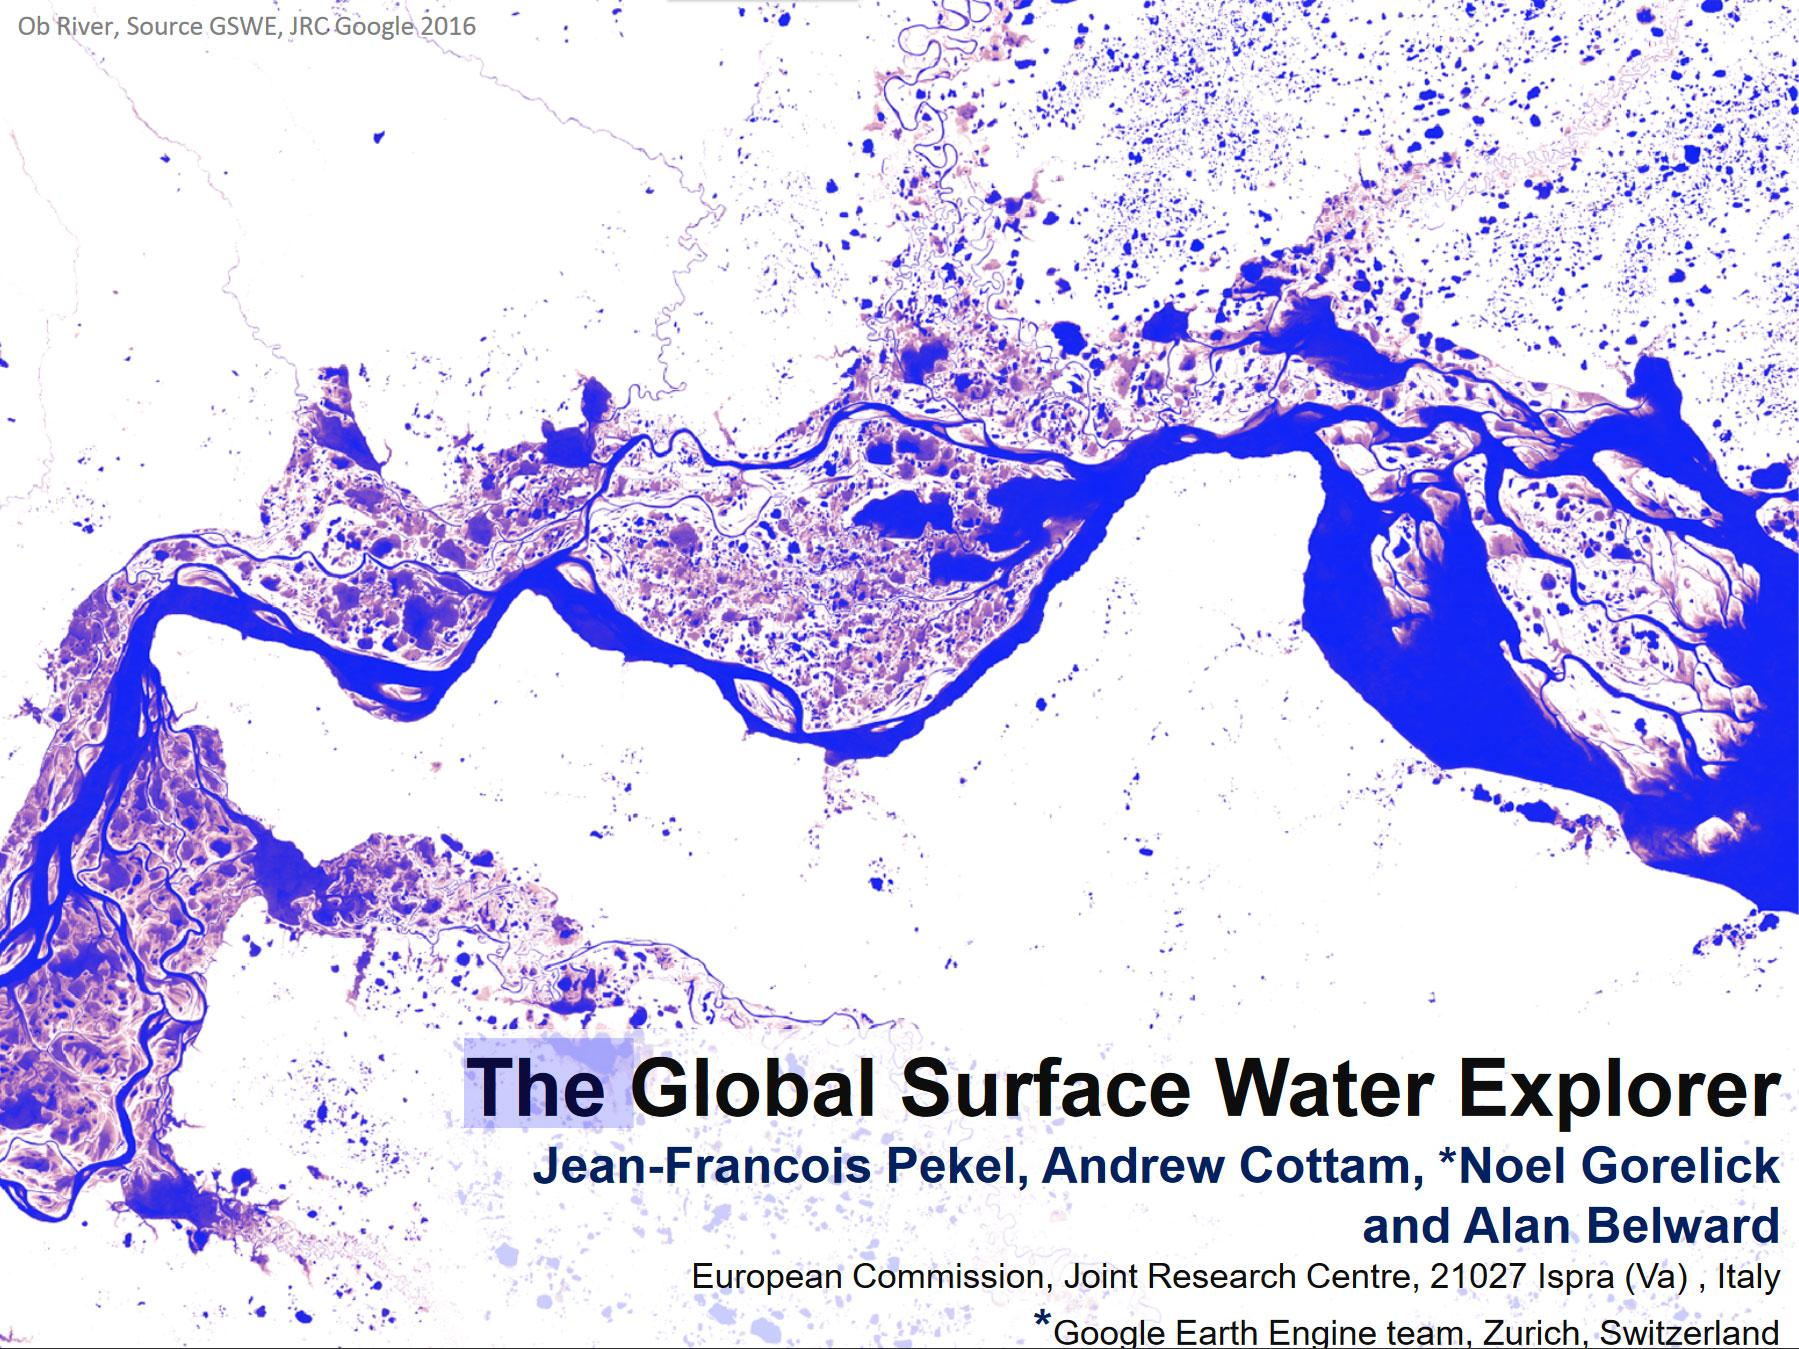 The Global Surface Water Explorer Presentation Cover